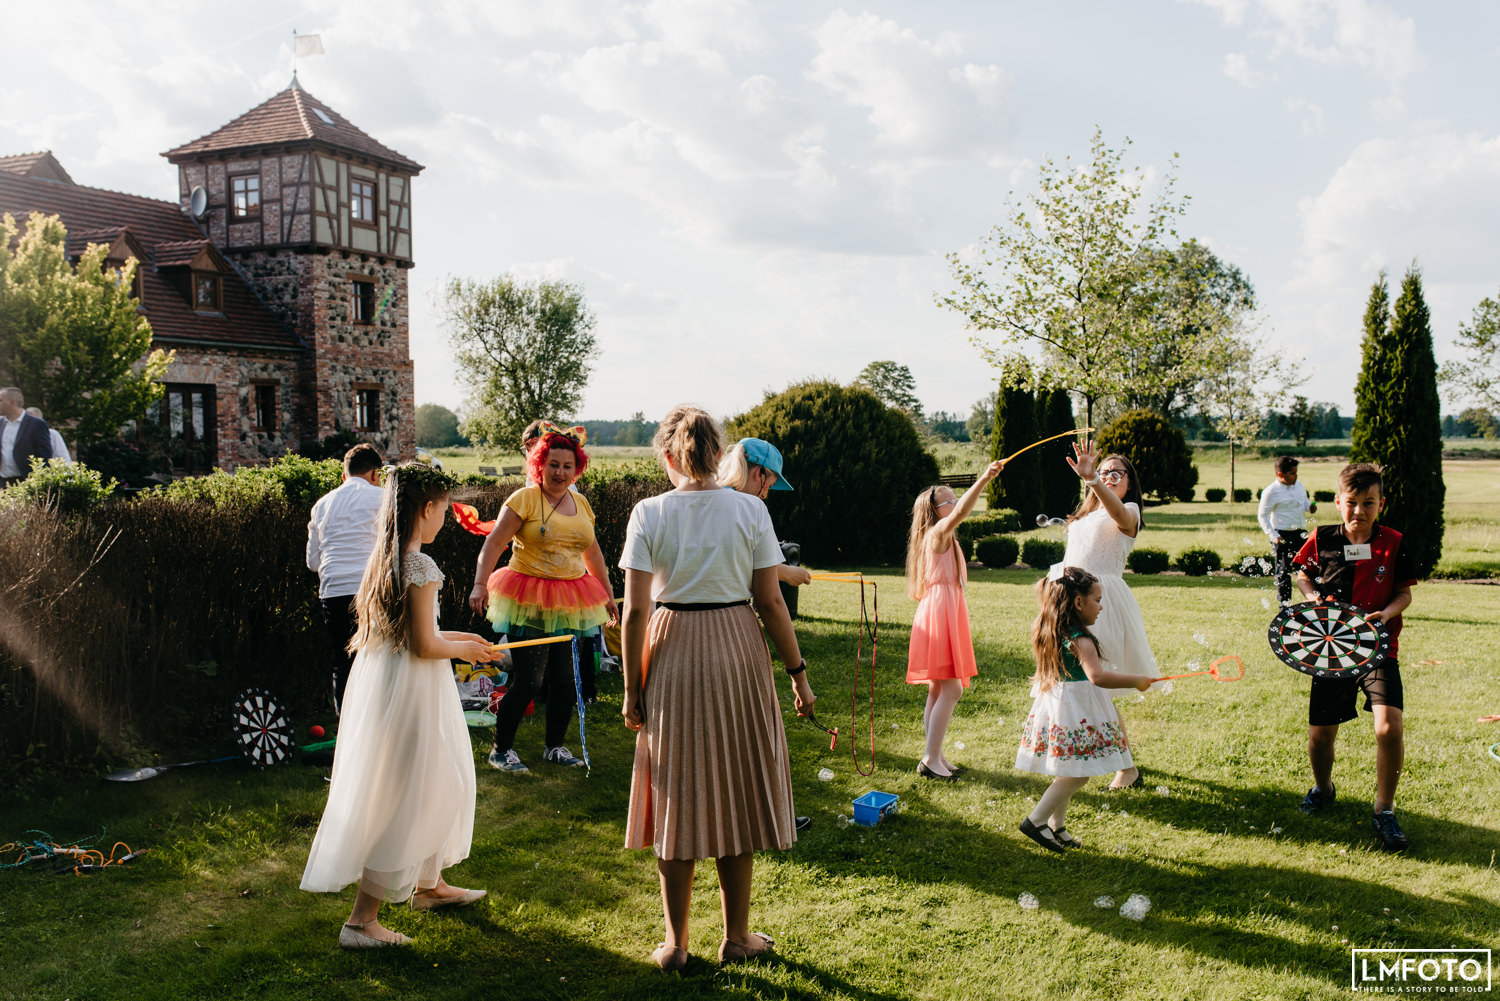 Lawn Games wedding